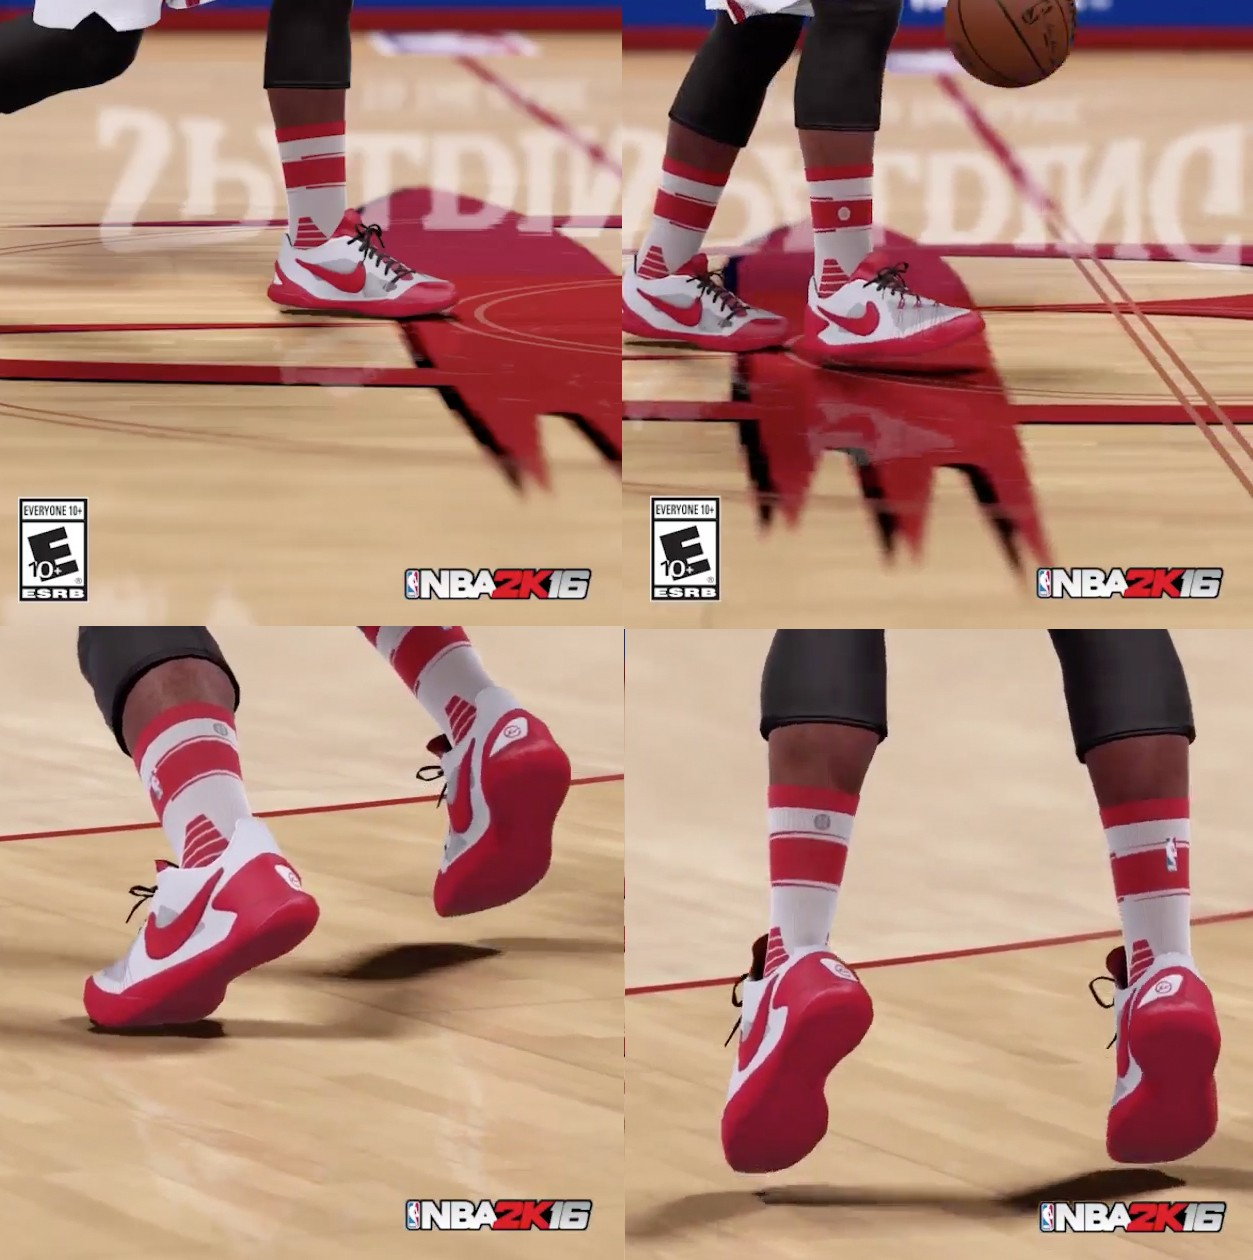 How to high wear socks in 2k16 pictures